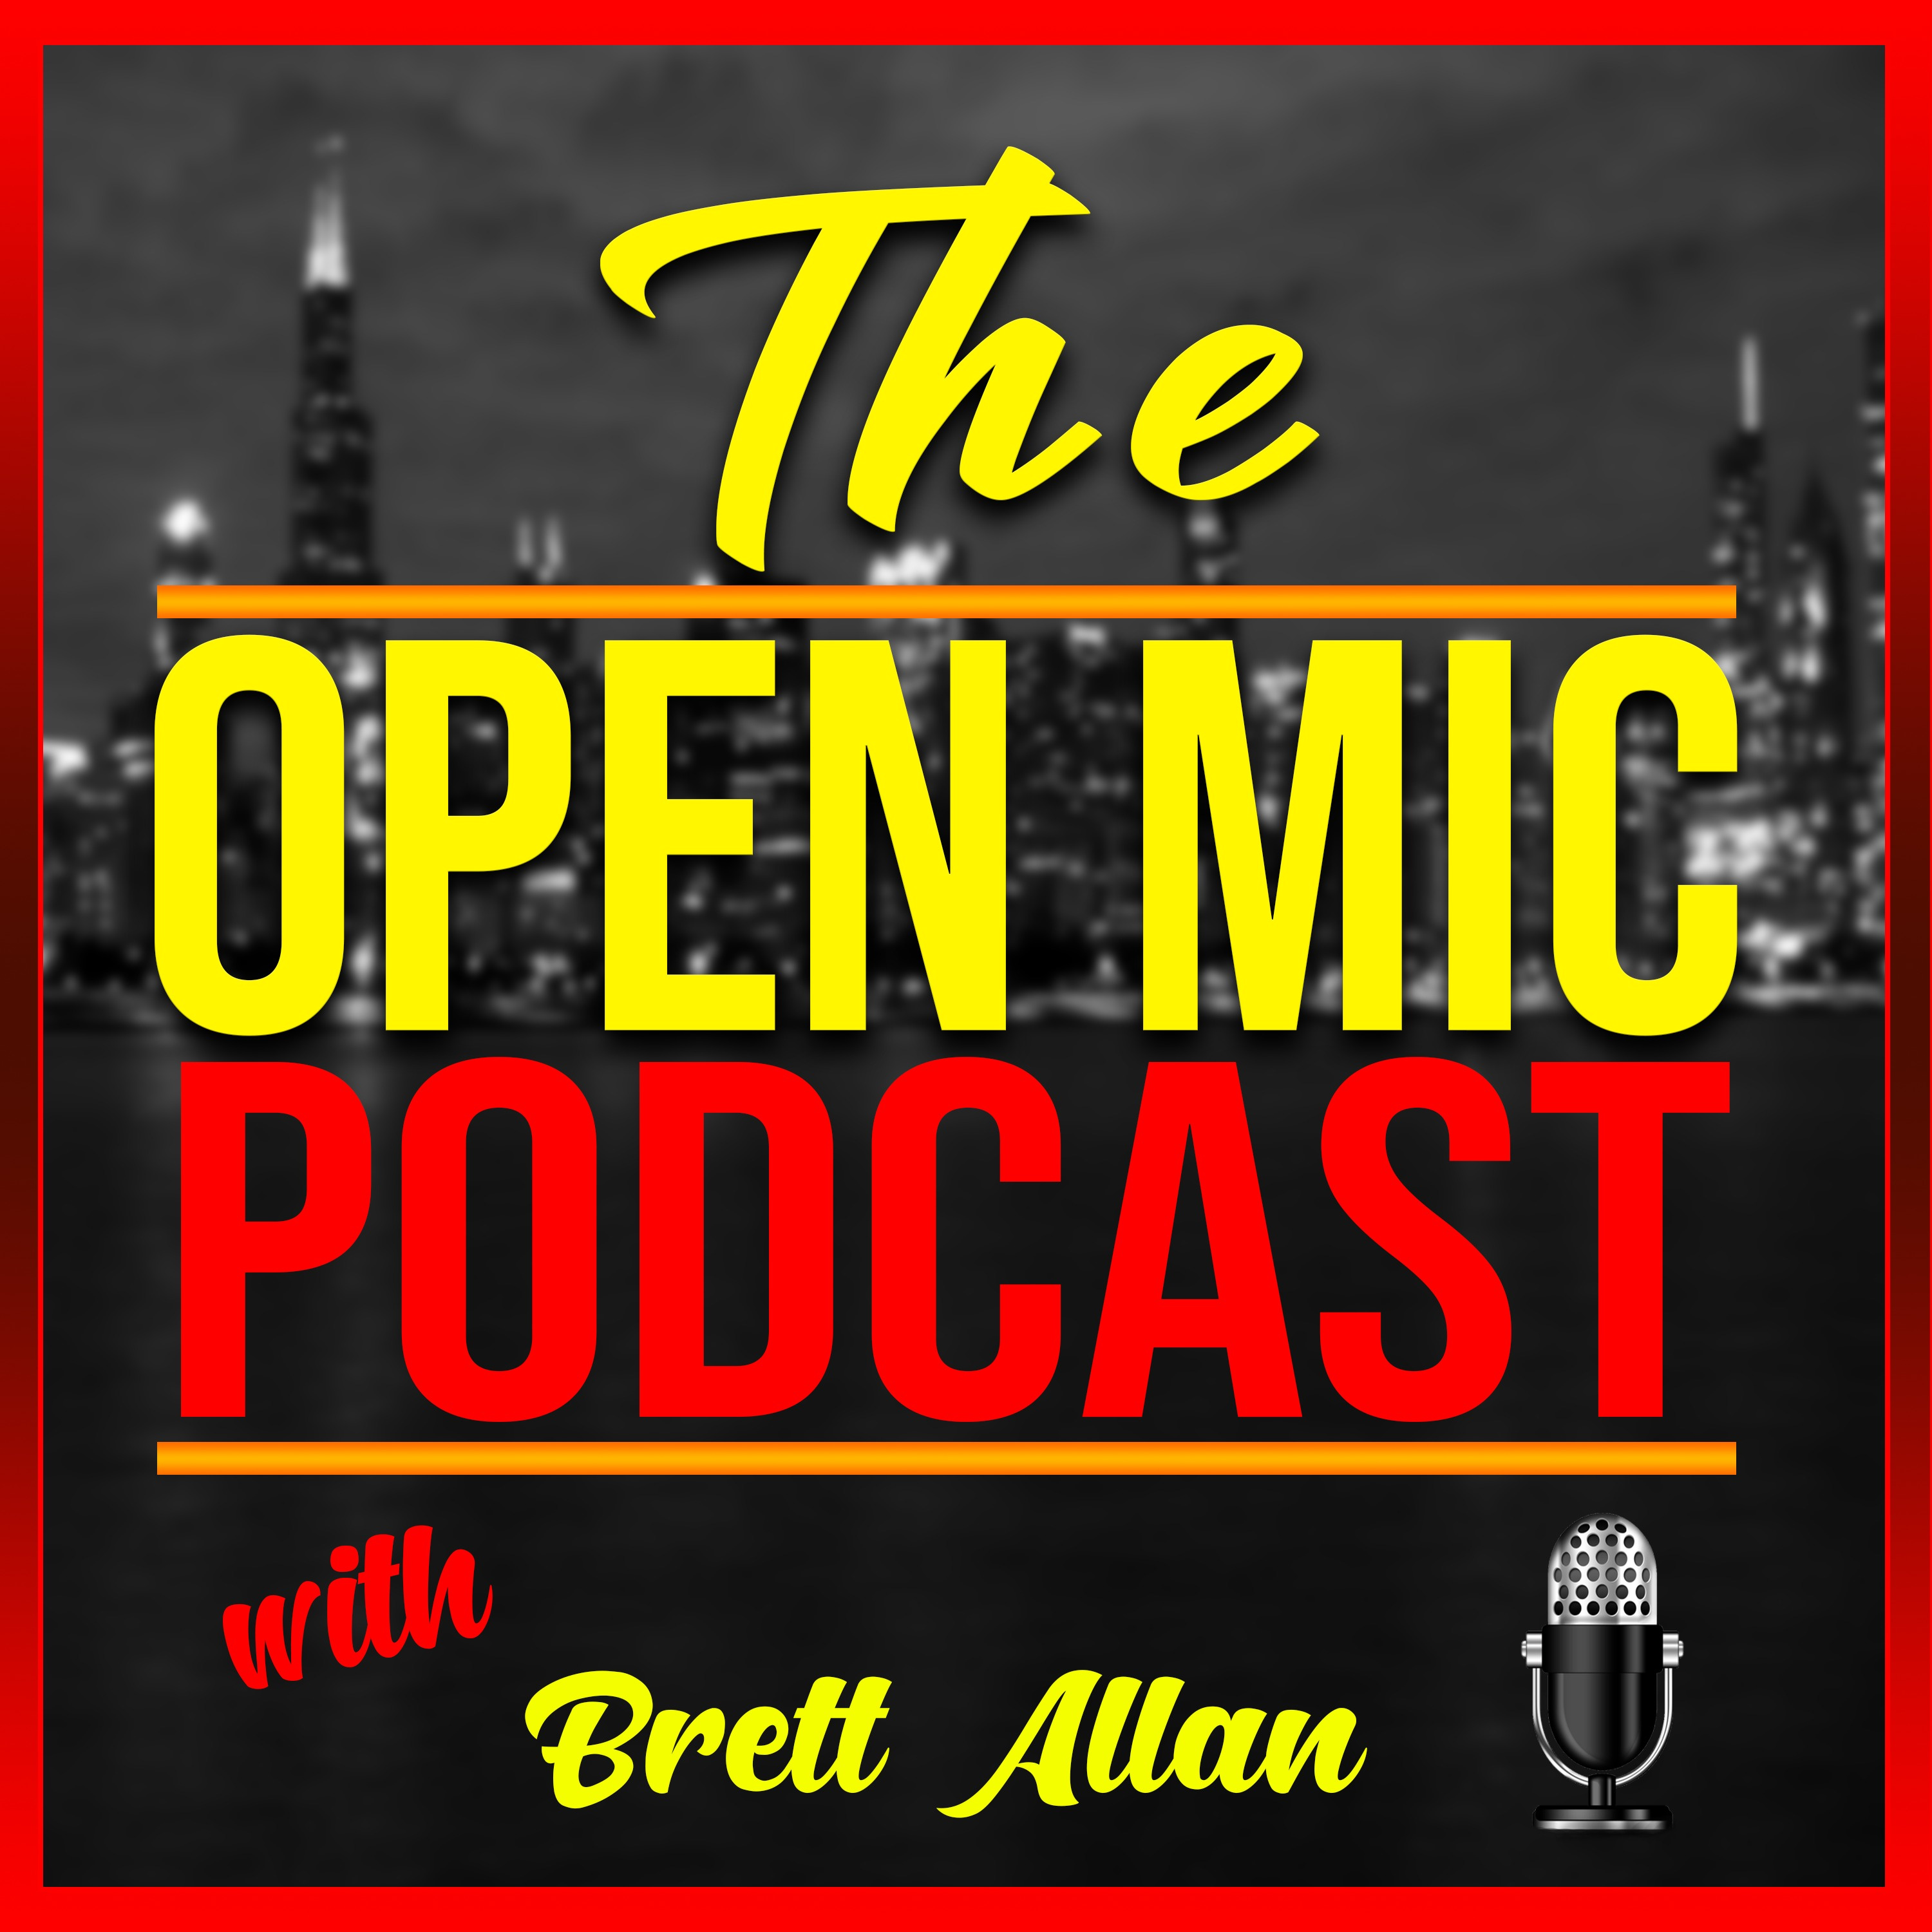 The Open Mic Podcast With Brett Allan • A podcast on Anchor